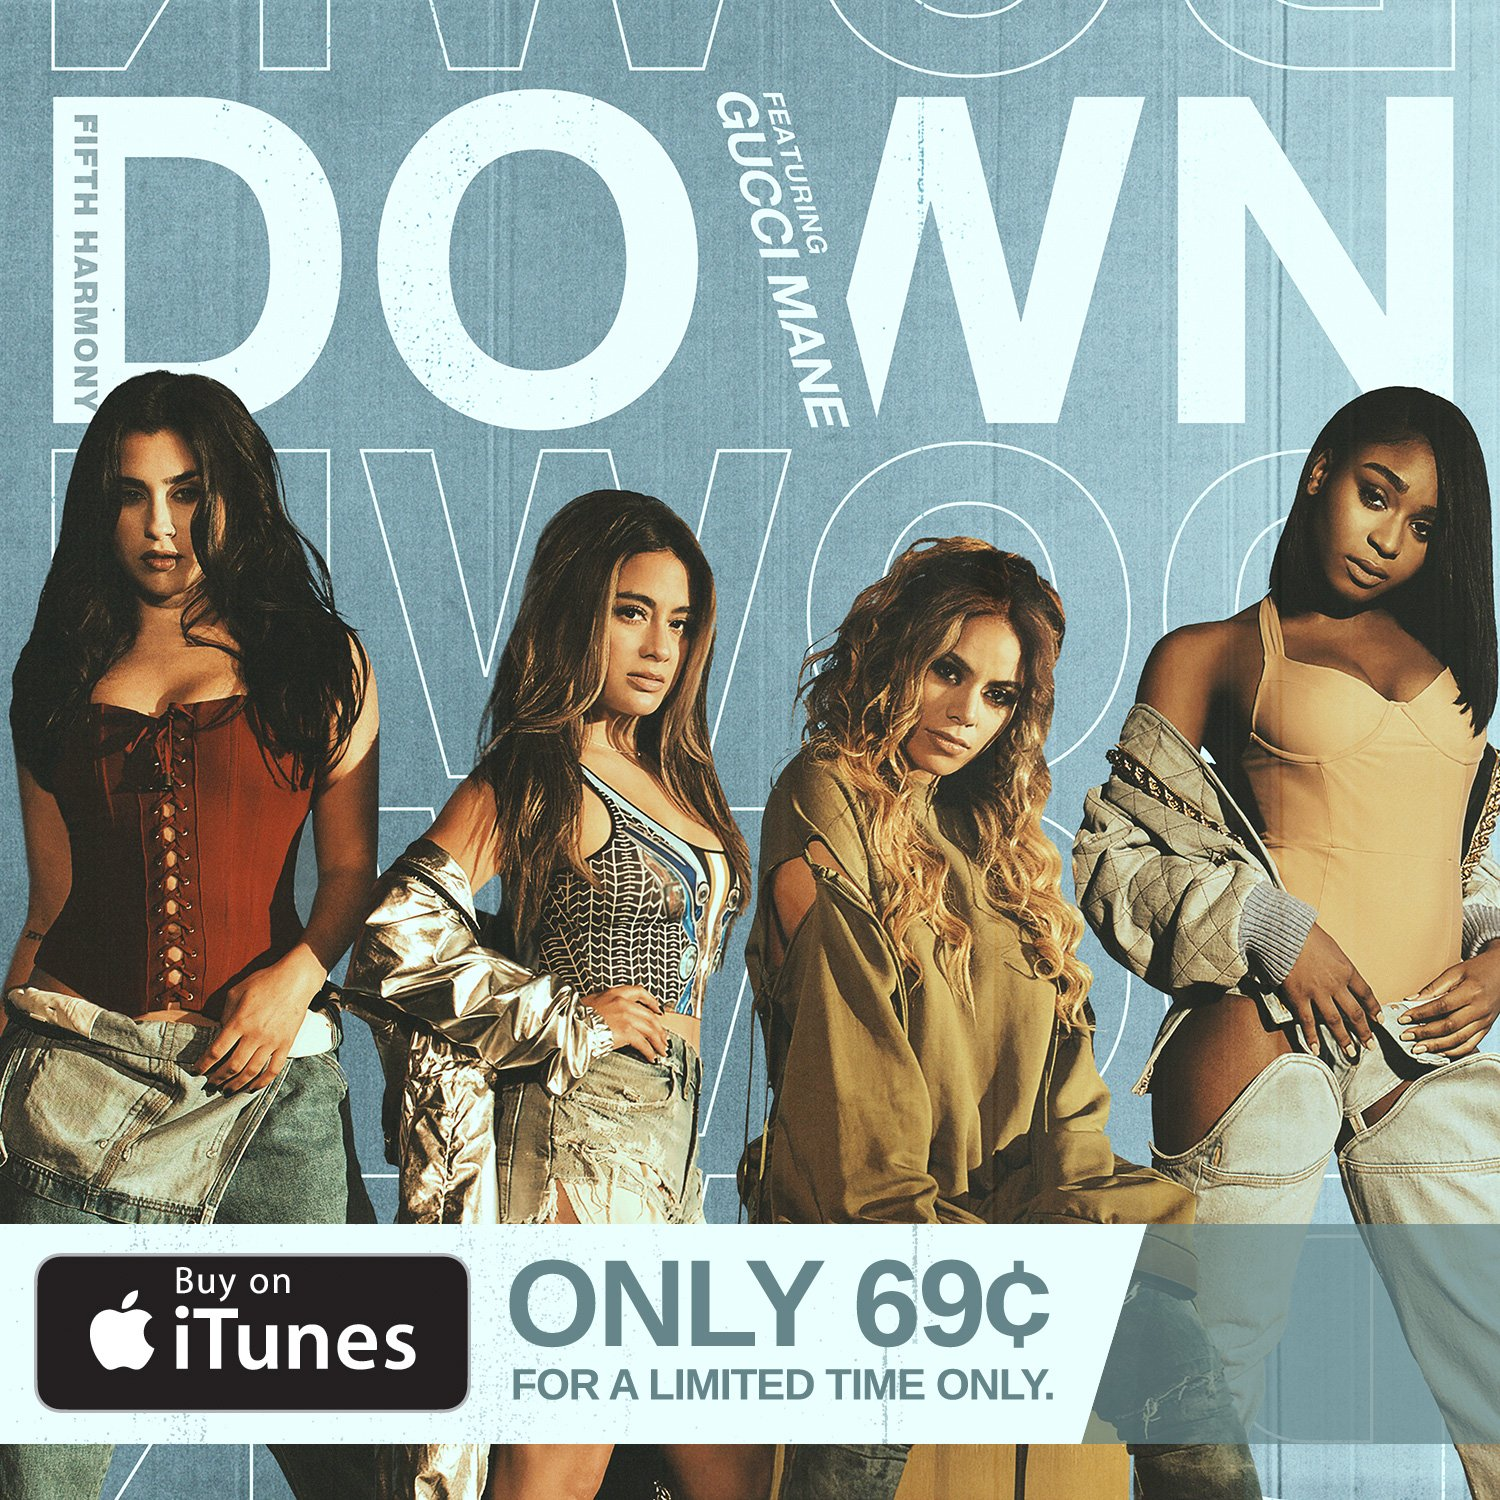 For a limited time, you can get DOWN on iTunes for $0.69! We gon' keep lovin' you ❤️ https://t.co/DMIcTzgoxO https://t.co/fxZ4xhGamv